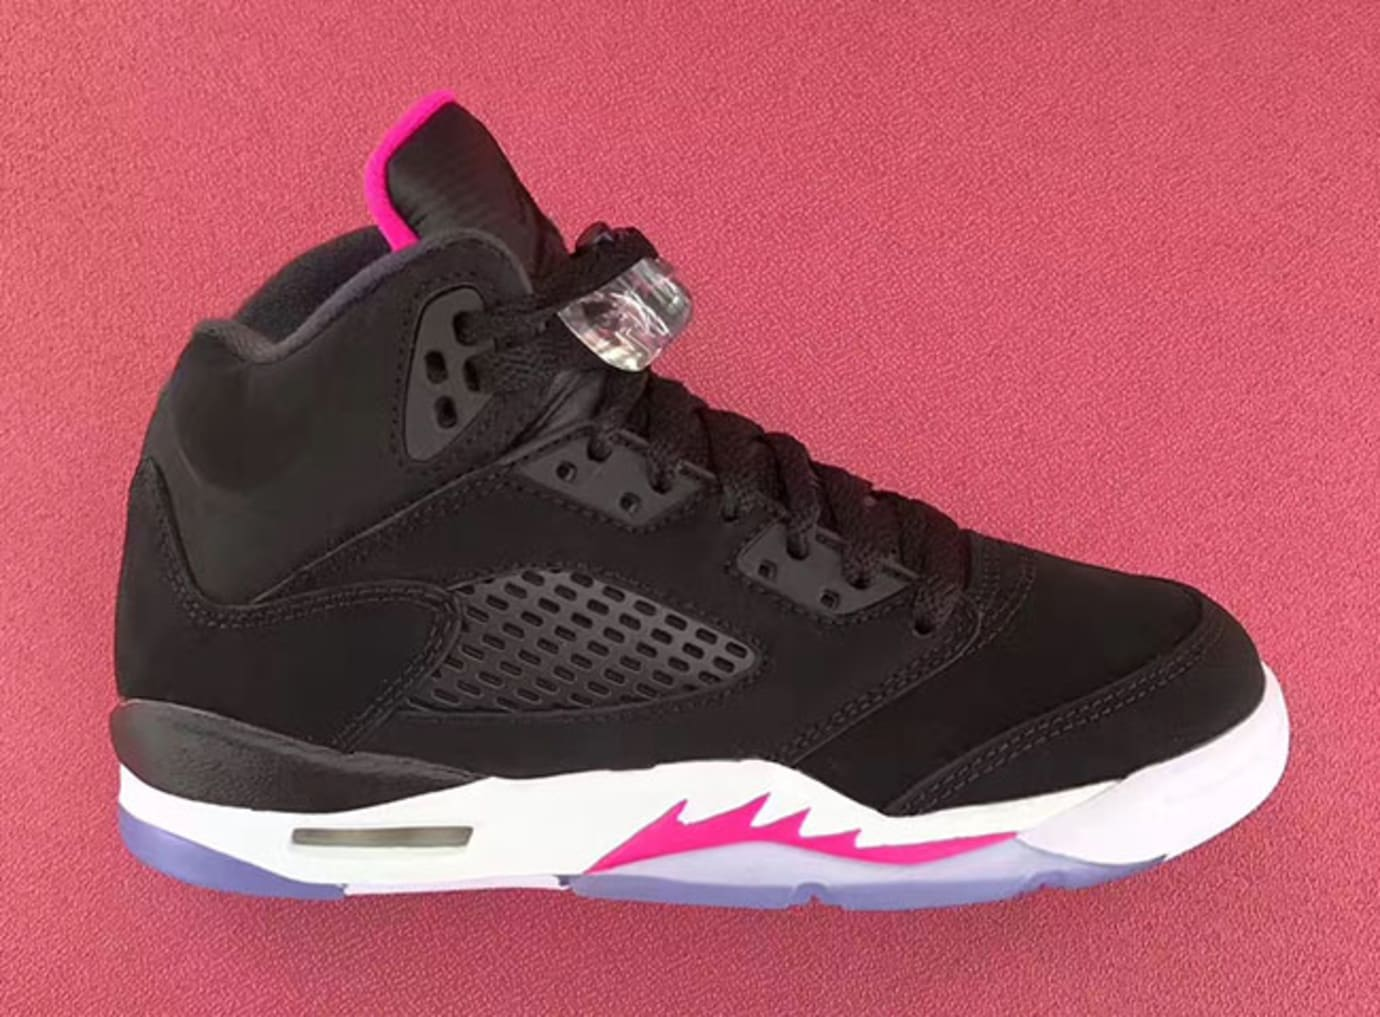 89beed405b4 Air Jordan 5 GS Deadly Pink Release Date 440892-029 | Sole Collector